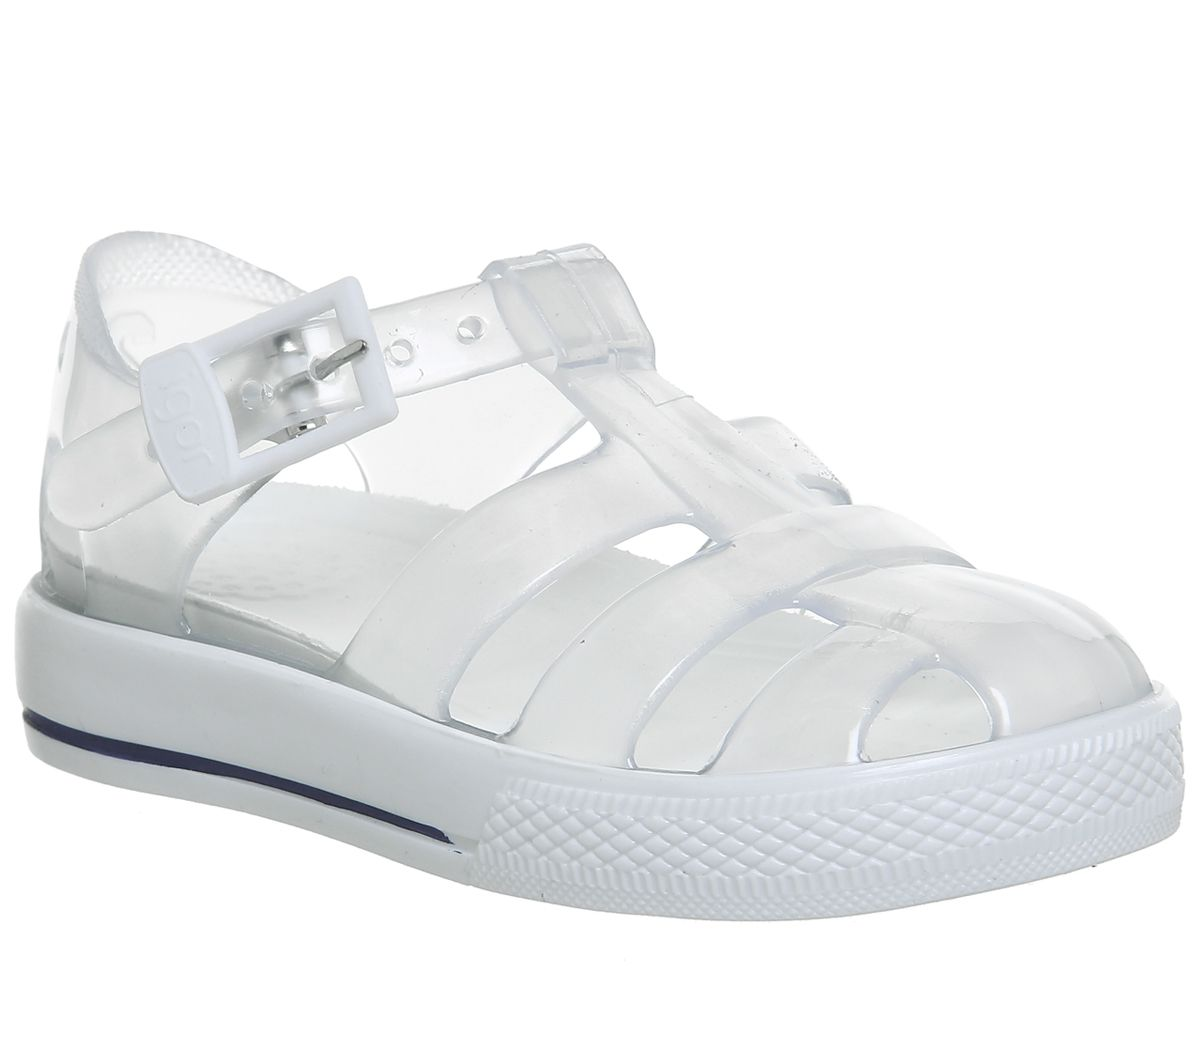 f4b8f8336737 Igor Tenis Kids Shoes Clear - Unisex